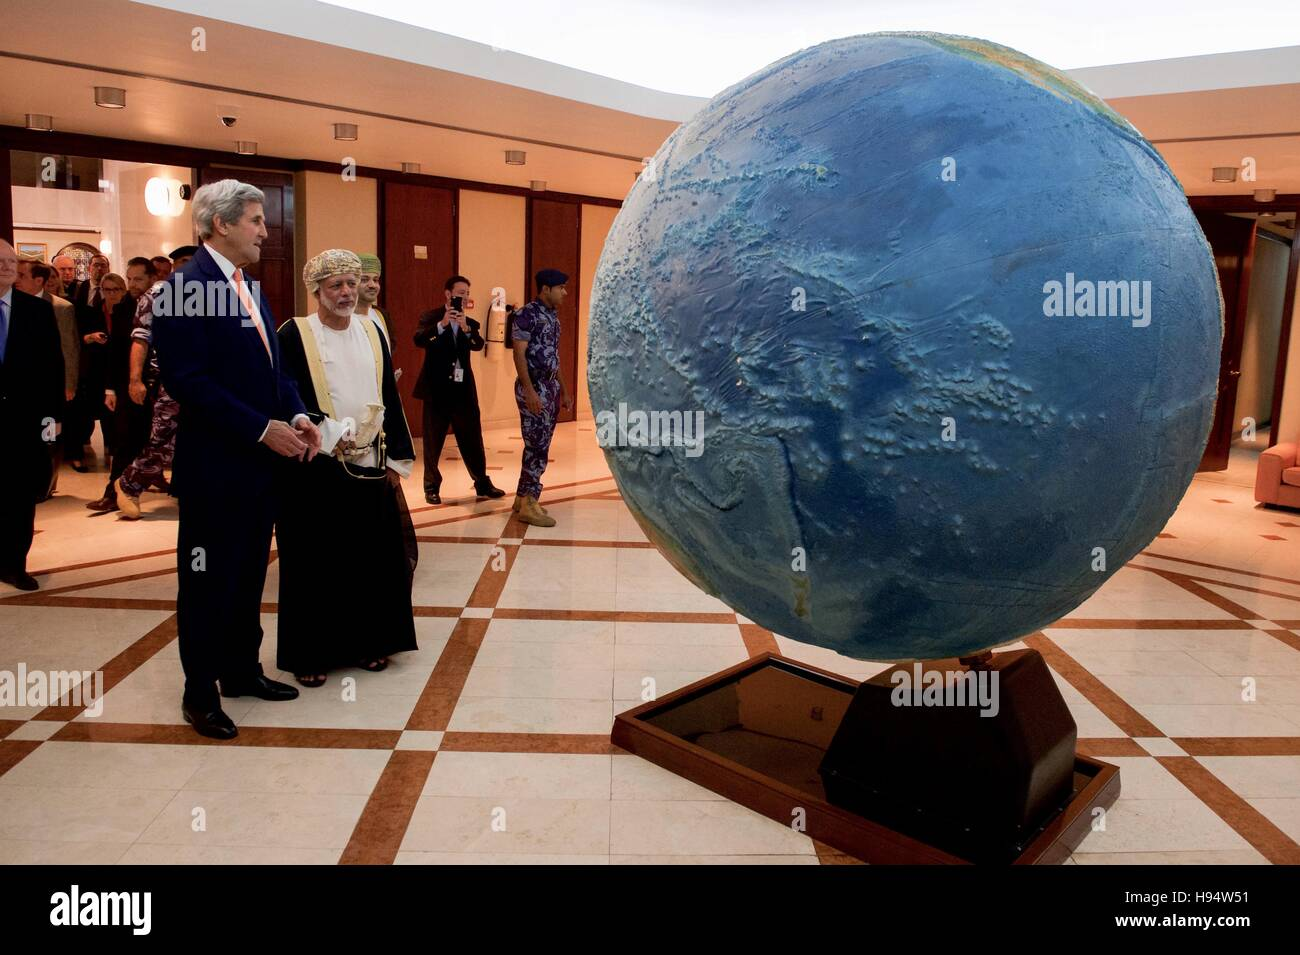 U.S. Secretary of State John Kerry and Omani Foreign Minister Yusuf bin Alawi look at a rotating globe at the Ministry - Stock Image